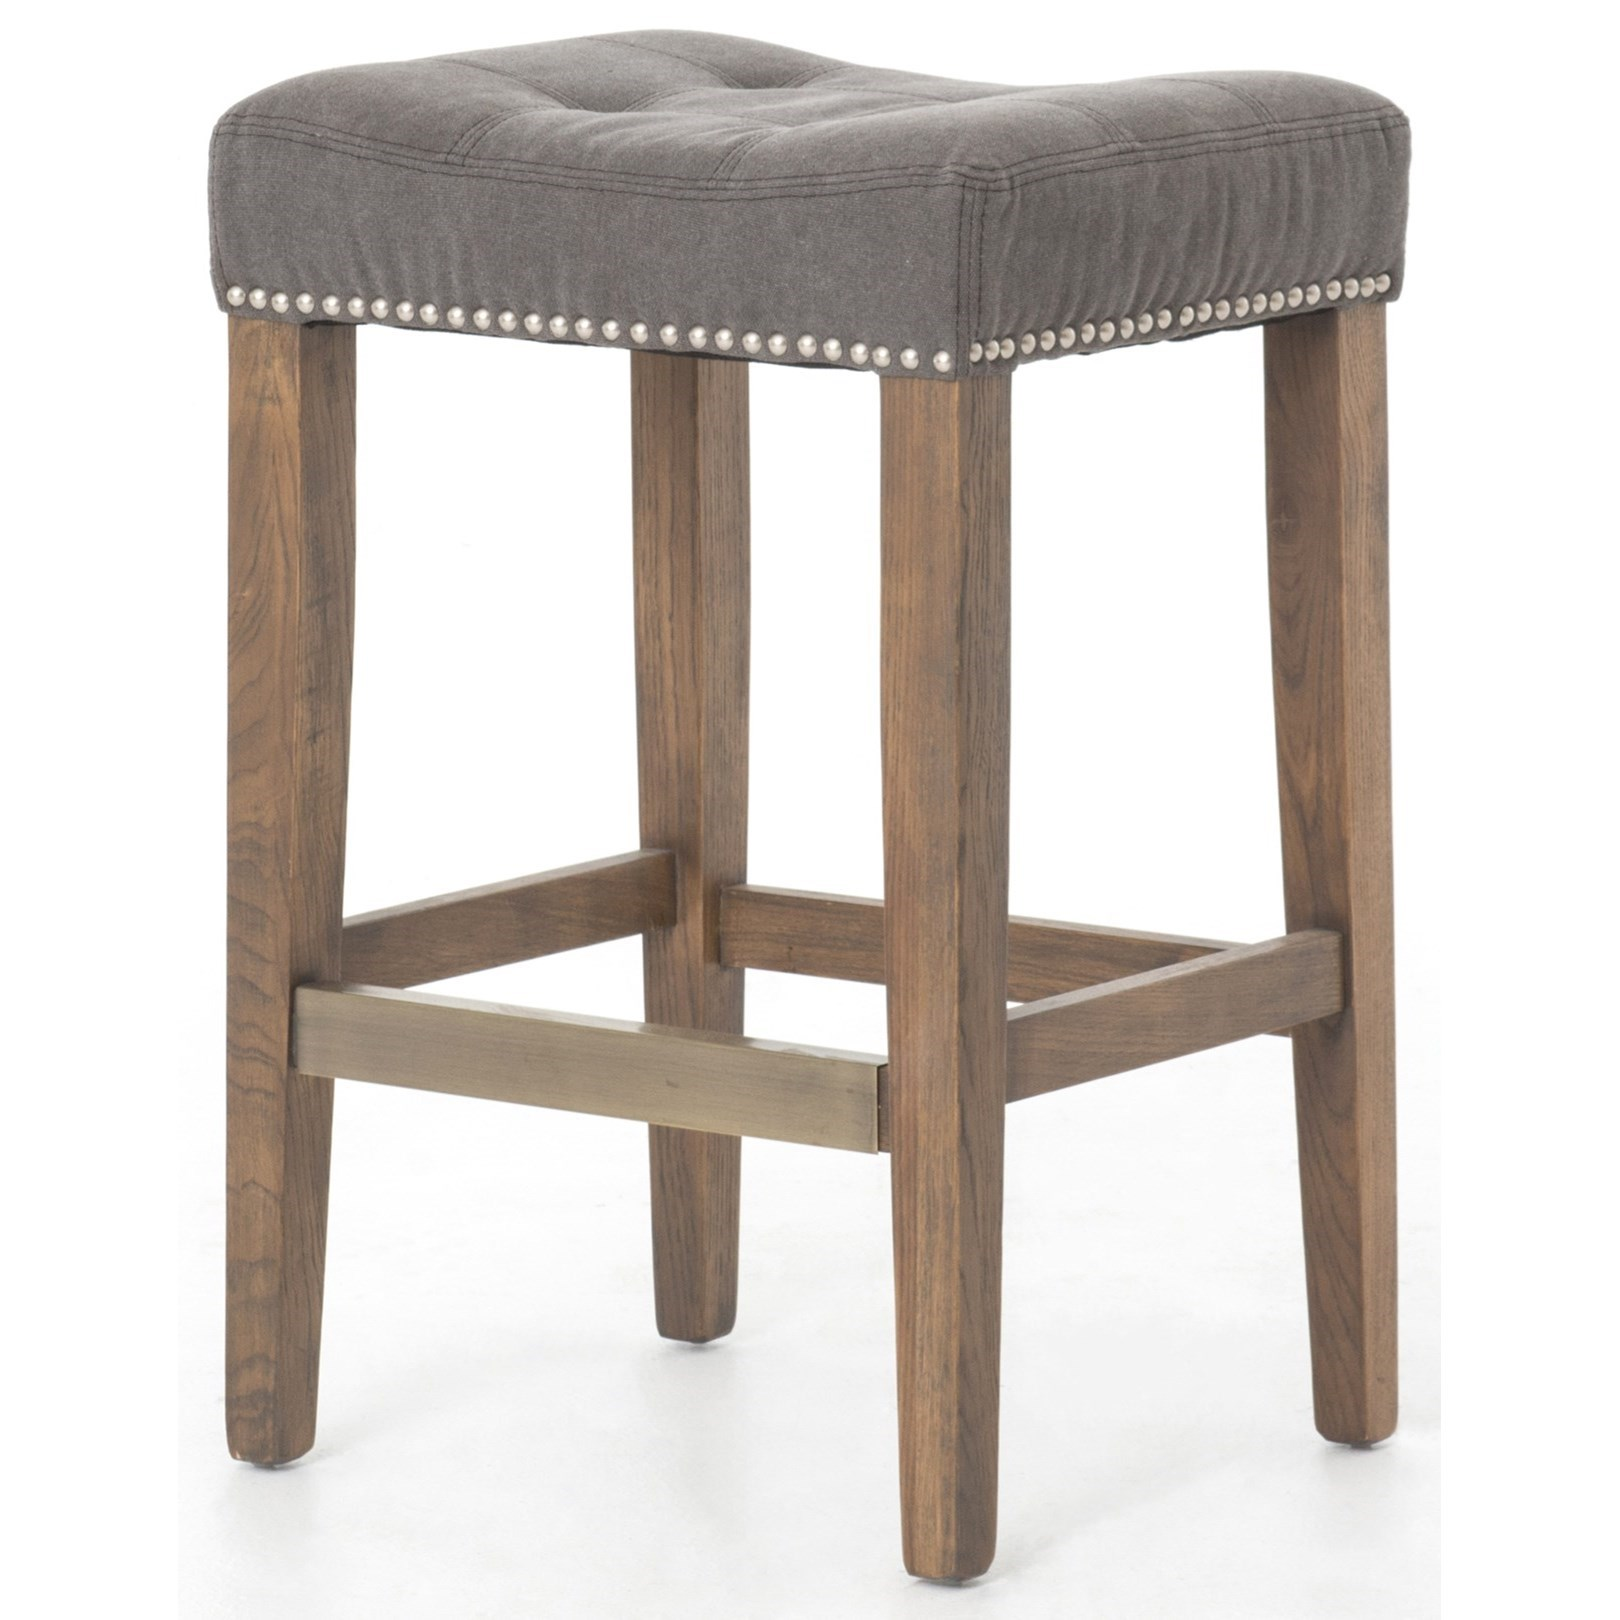 Four Hands Ashford Sean Grey Counterstool - Item Number: CASH-01GP-25